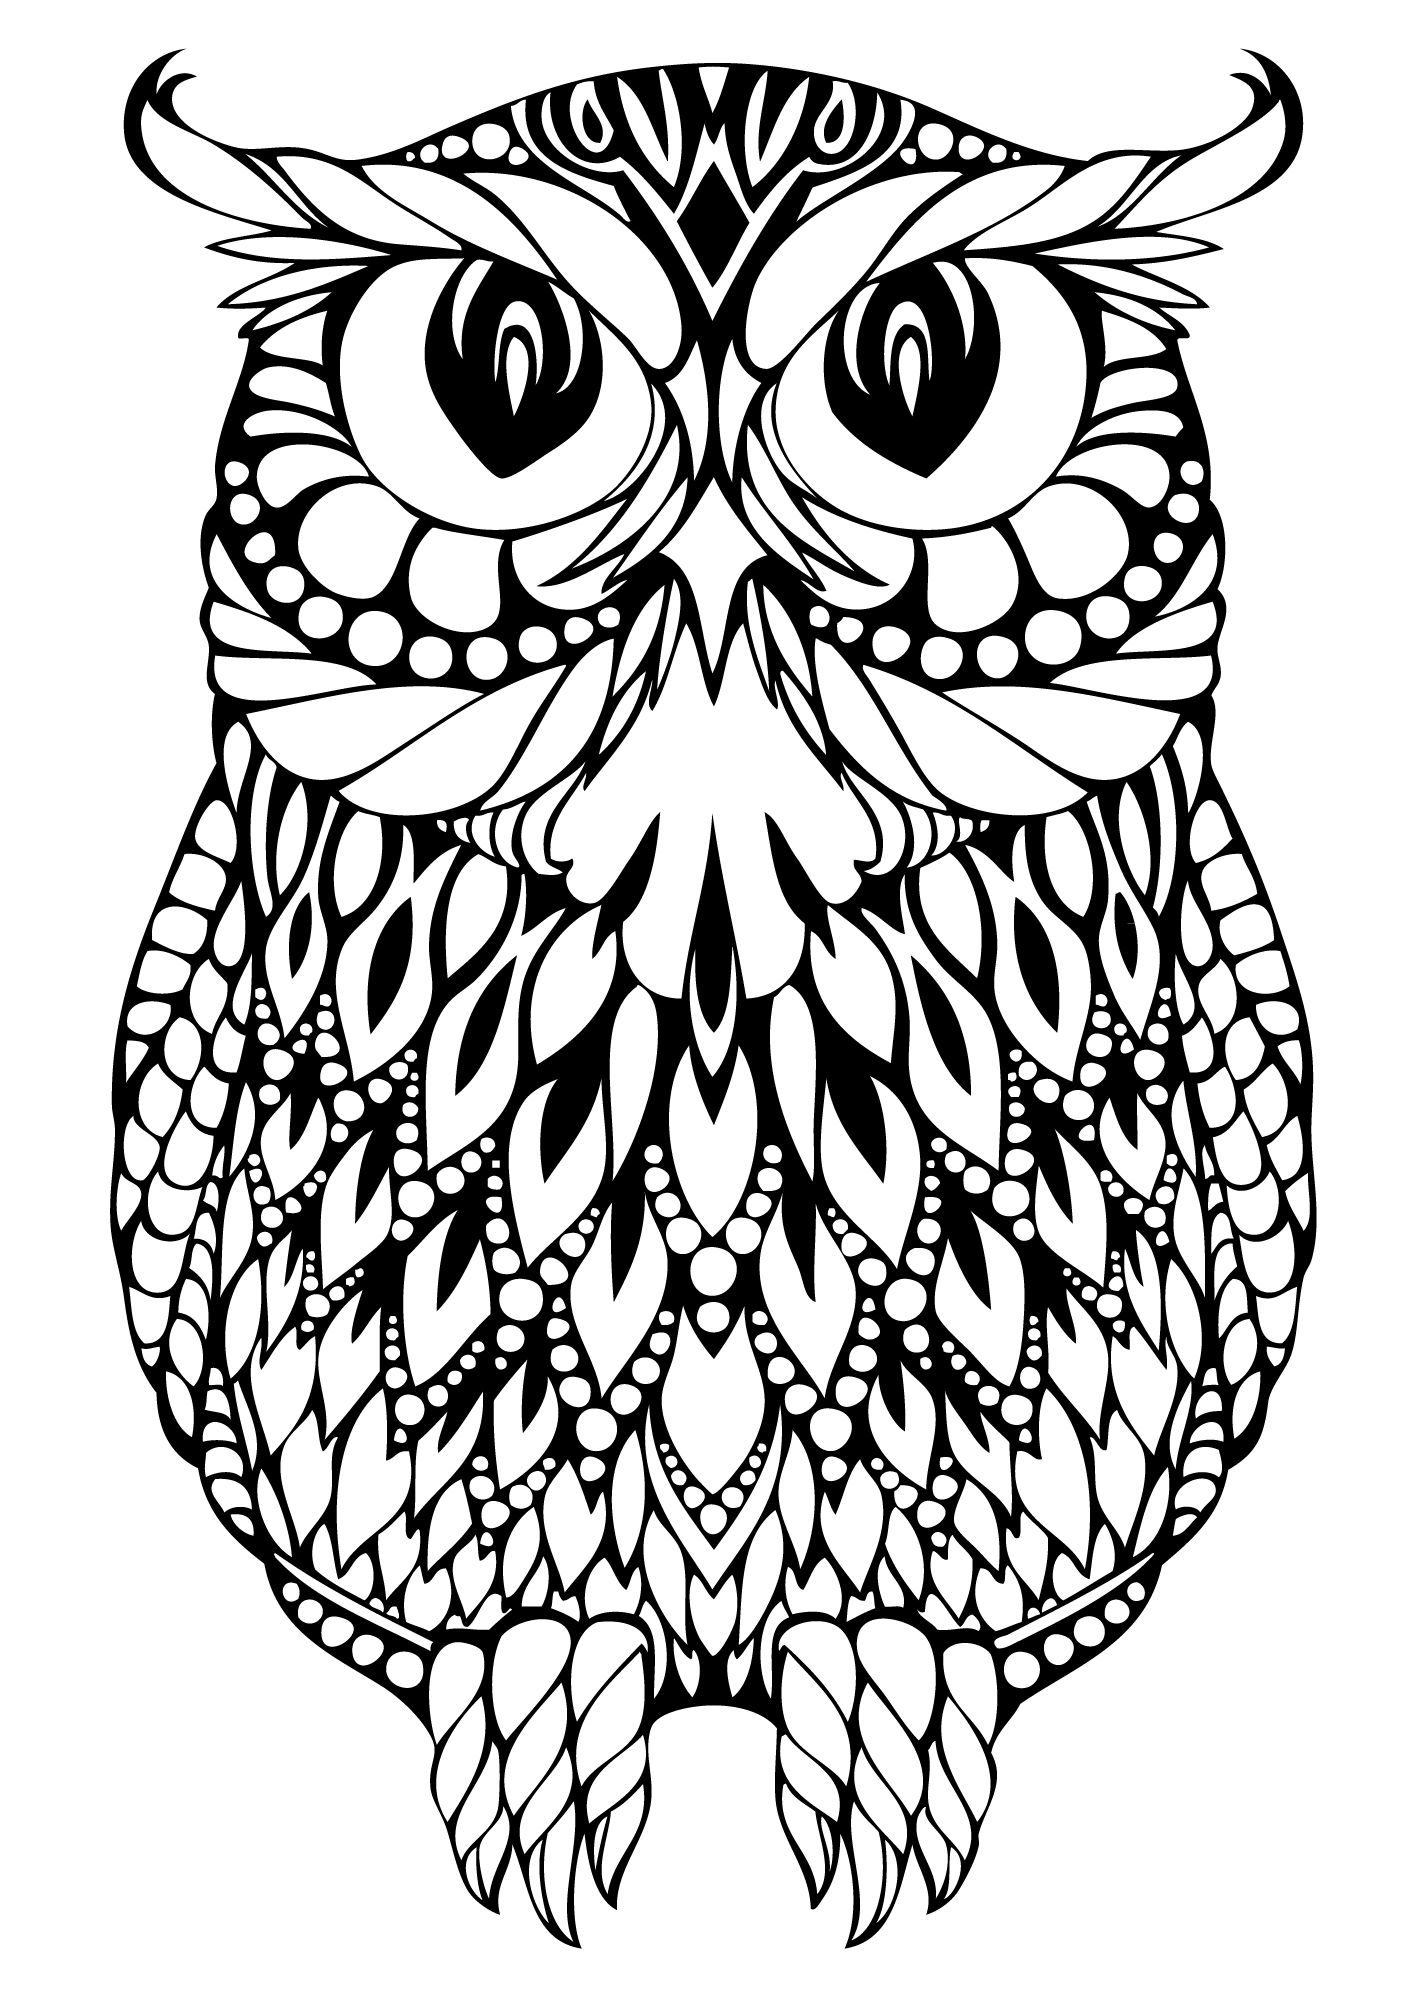 owl-coloring-page-0001-q1